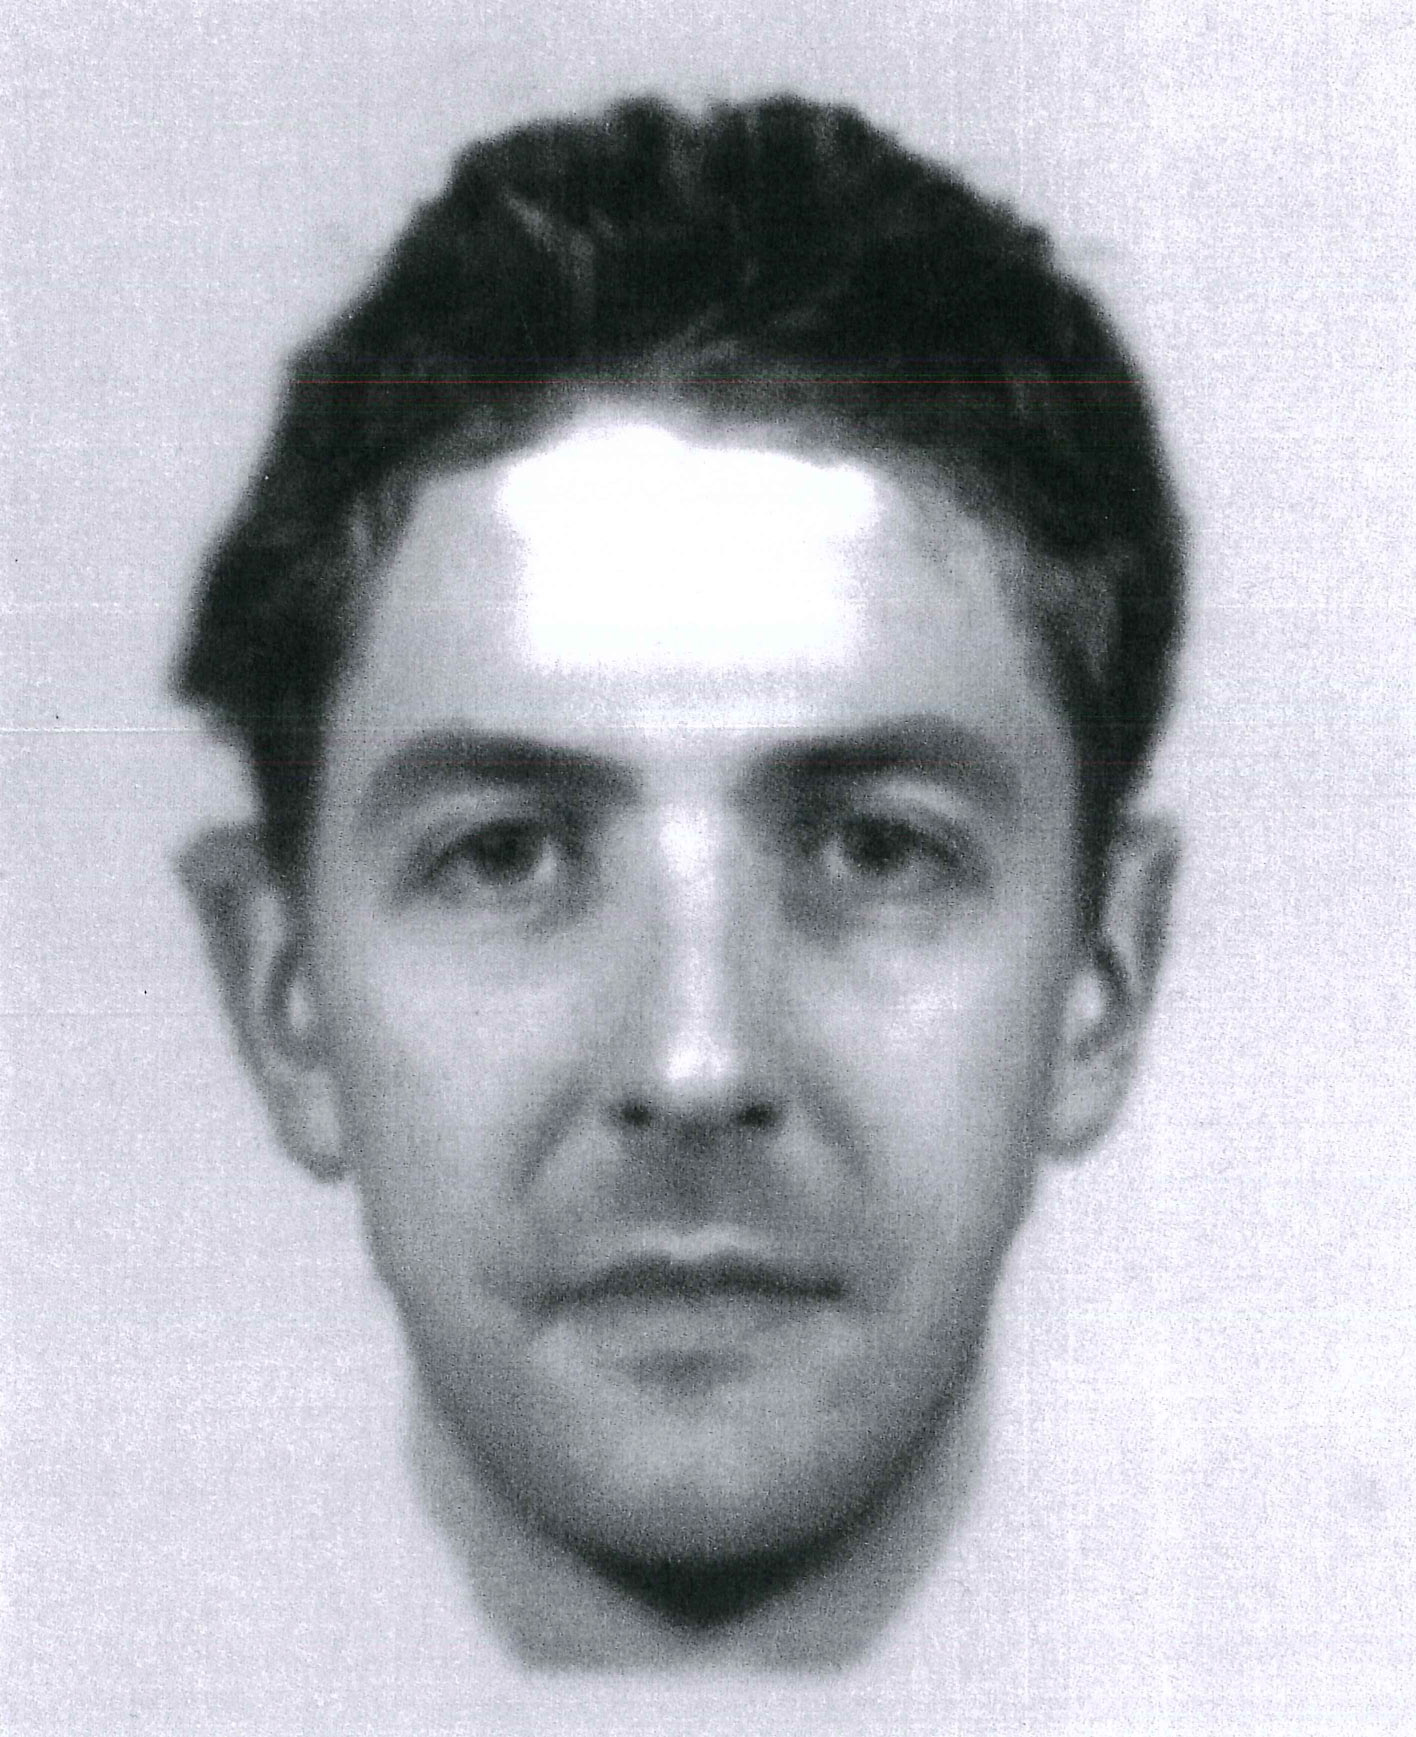 An e-fit of the suspected flasher who exposed himself to 10 people, including schoolgirls as young as 12.